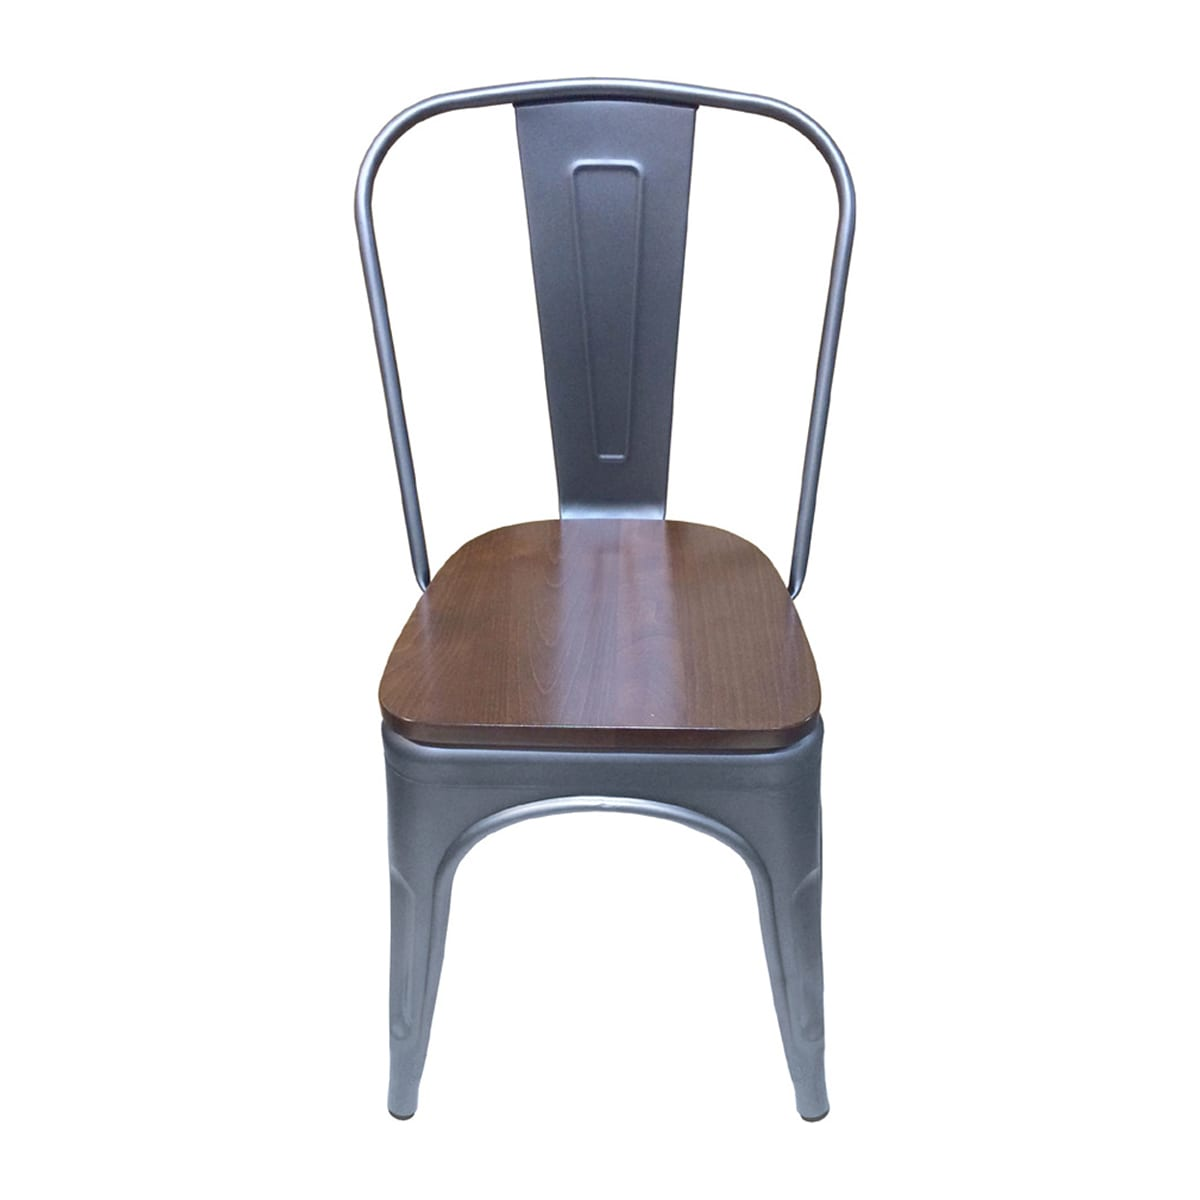 custom commecial metal chairs